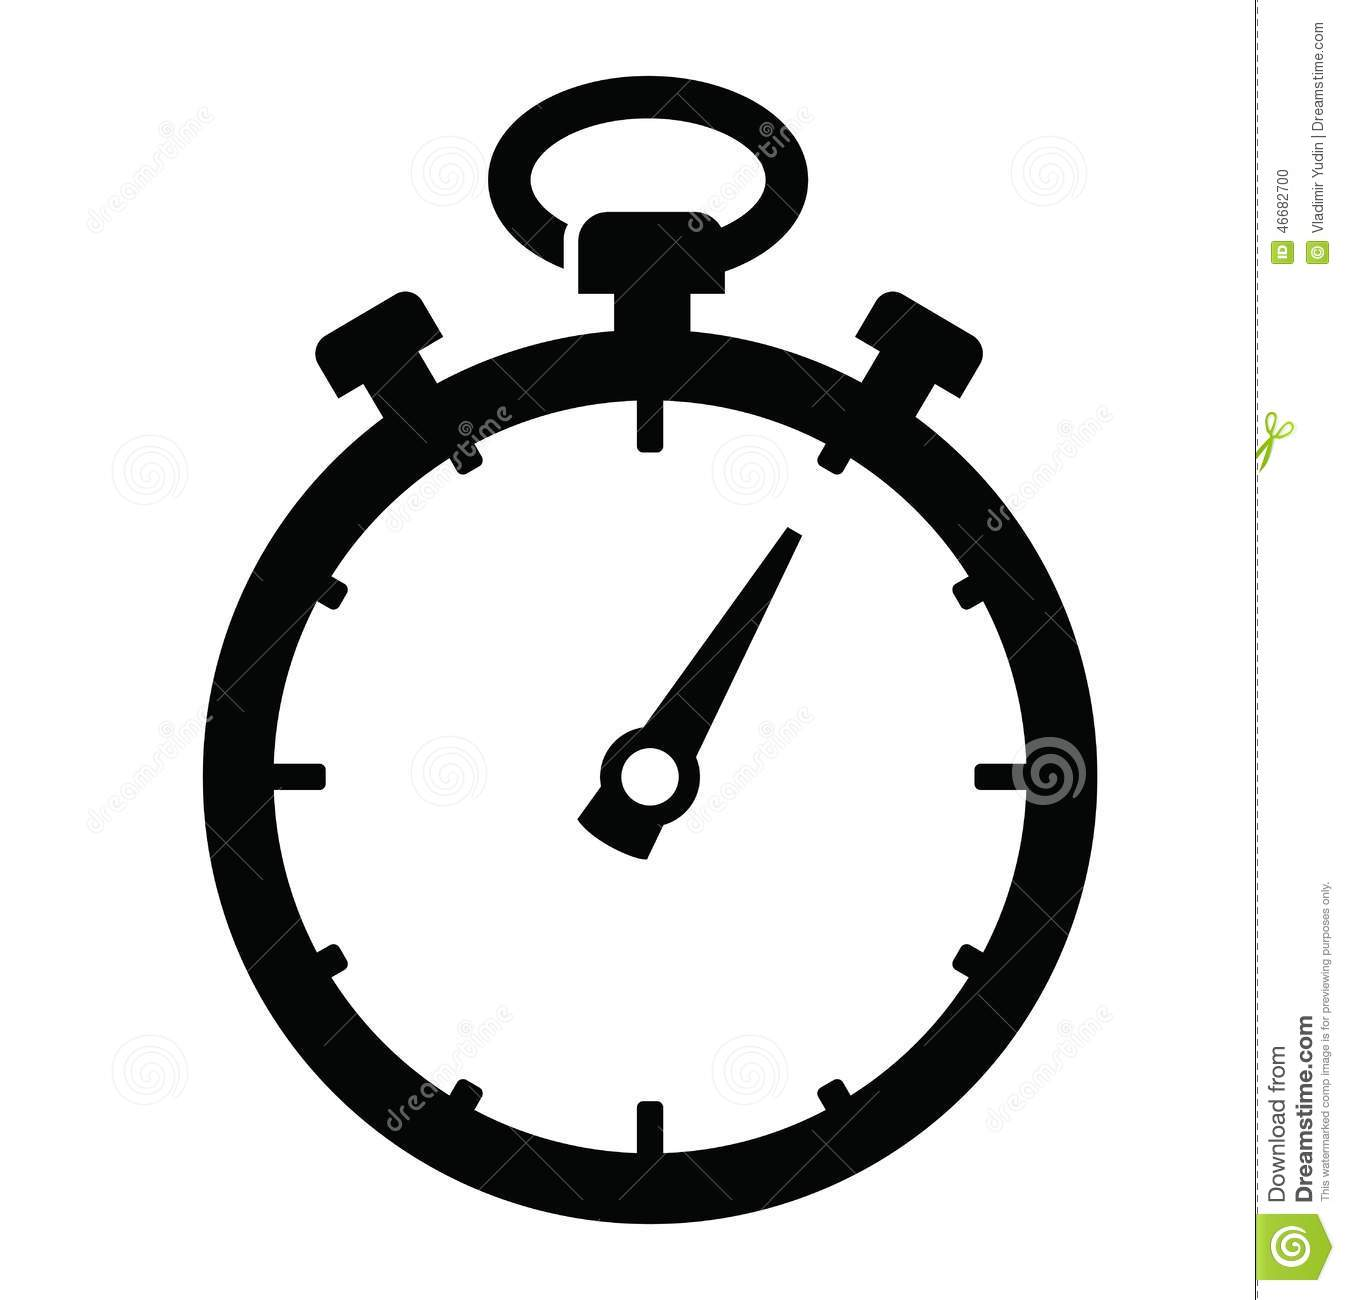 stopwatch icon stock vector illustration of simple chronometer rh dreamstime com stopwatch vector png stopwatch vector icon